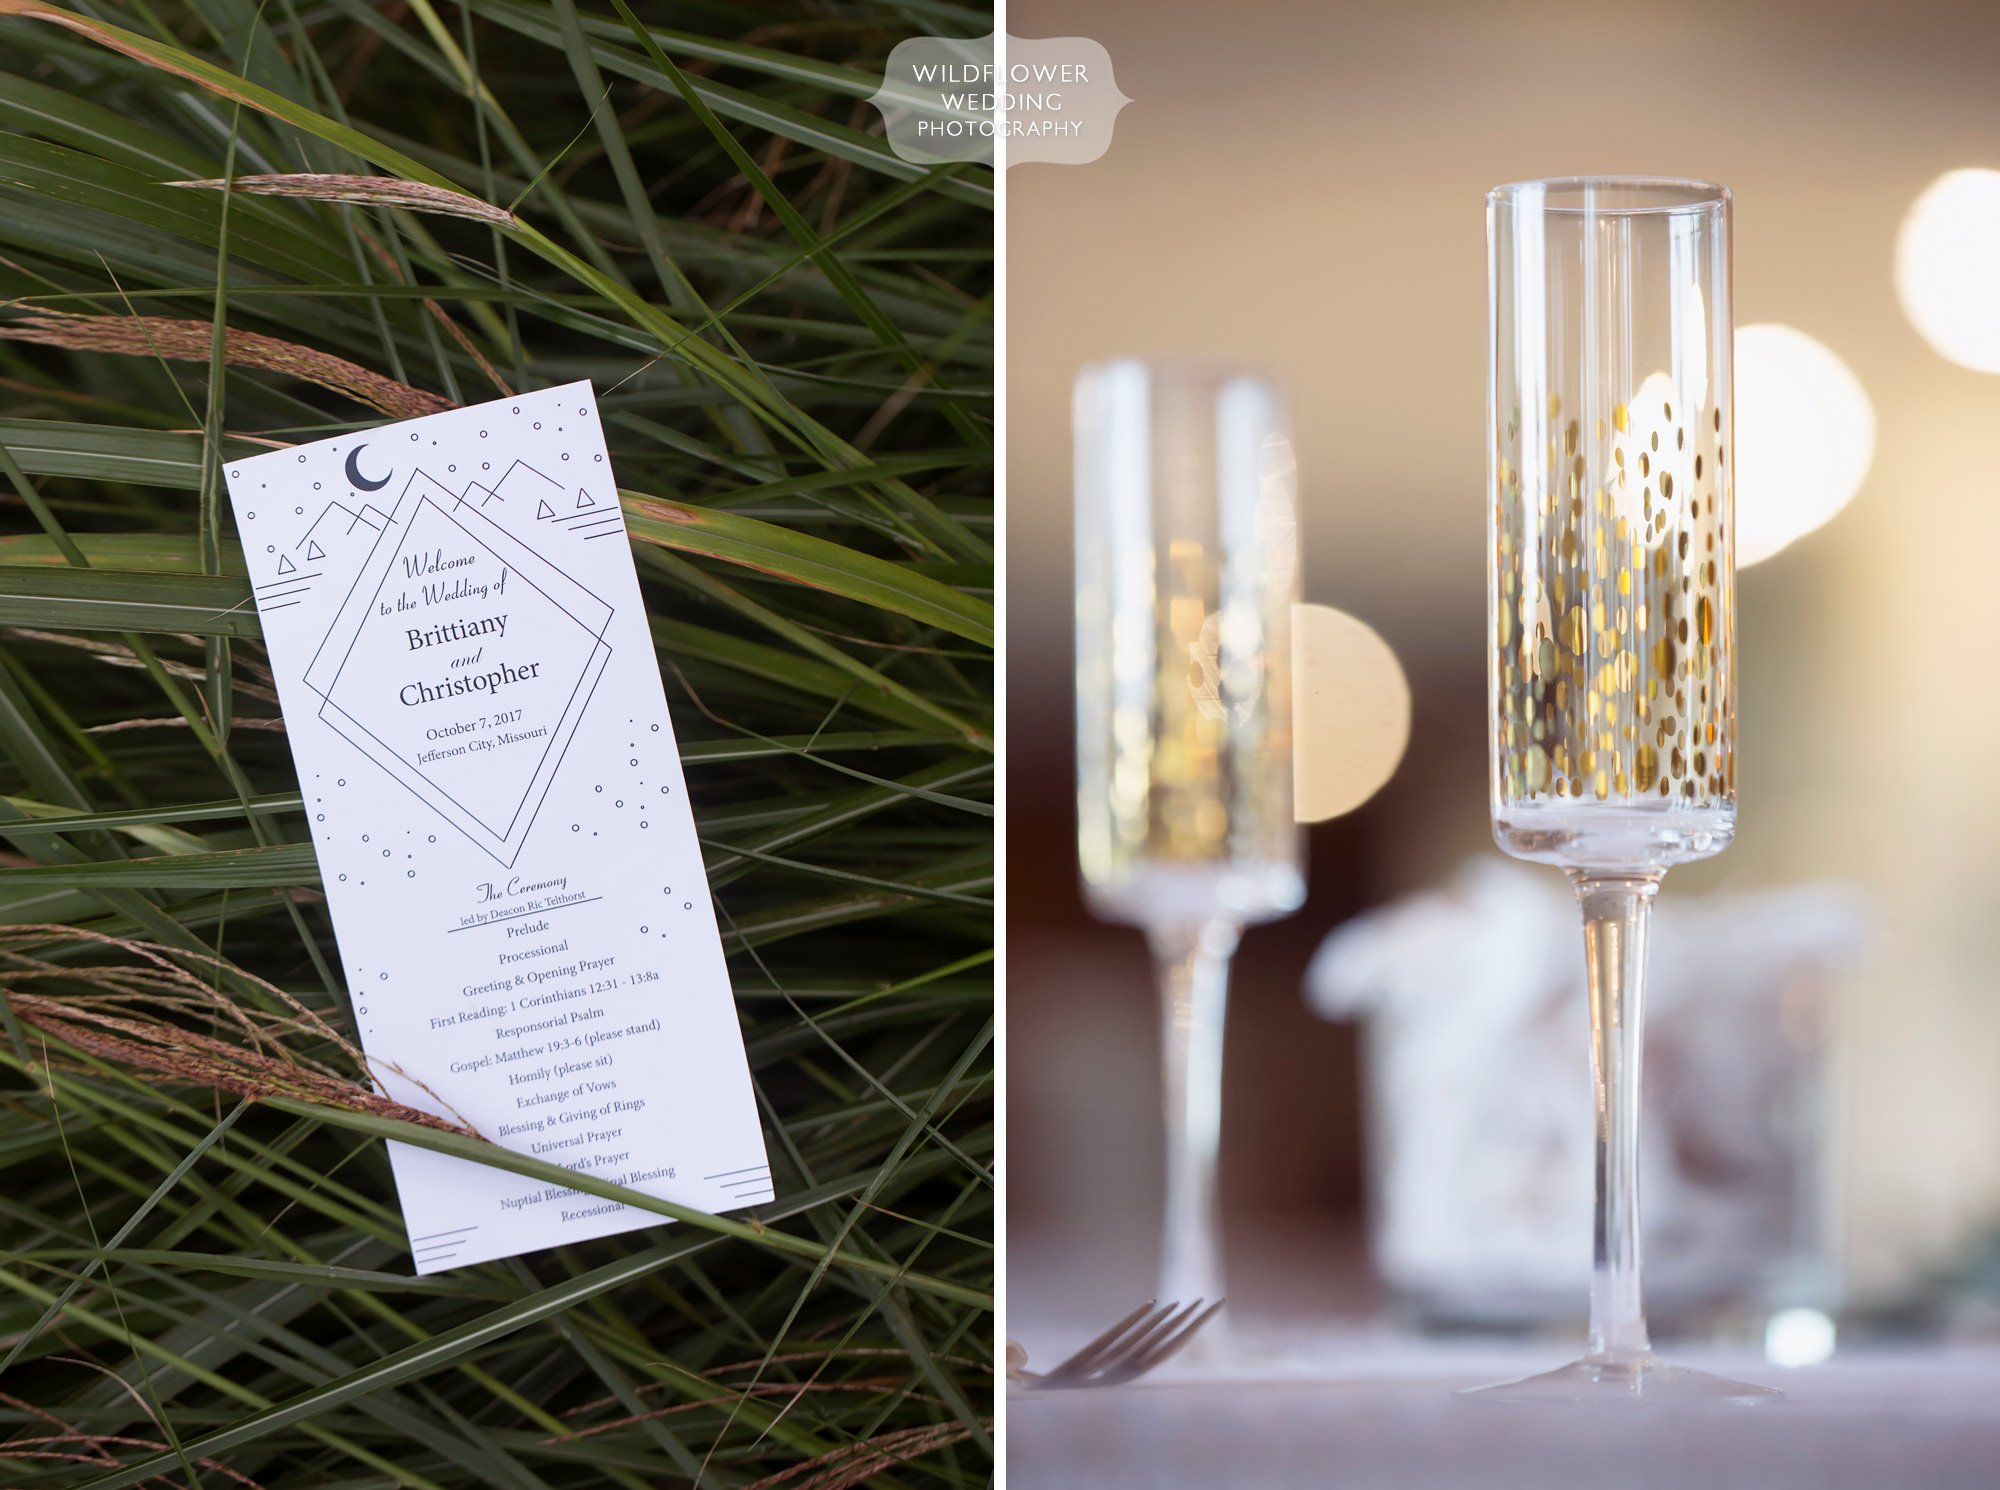 Rustic chic wedding details with polka dot champaign glasses at Jeff City CC.